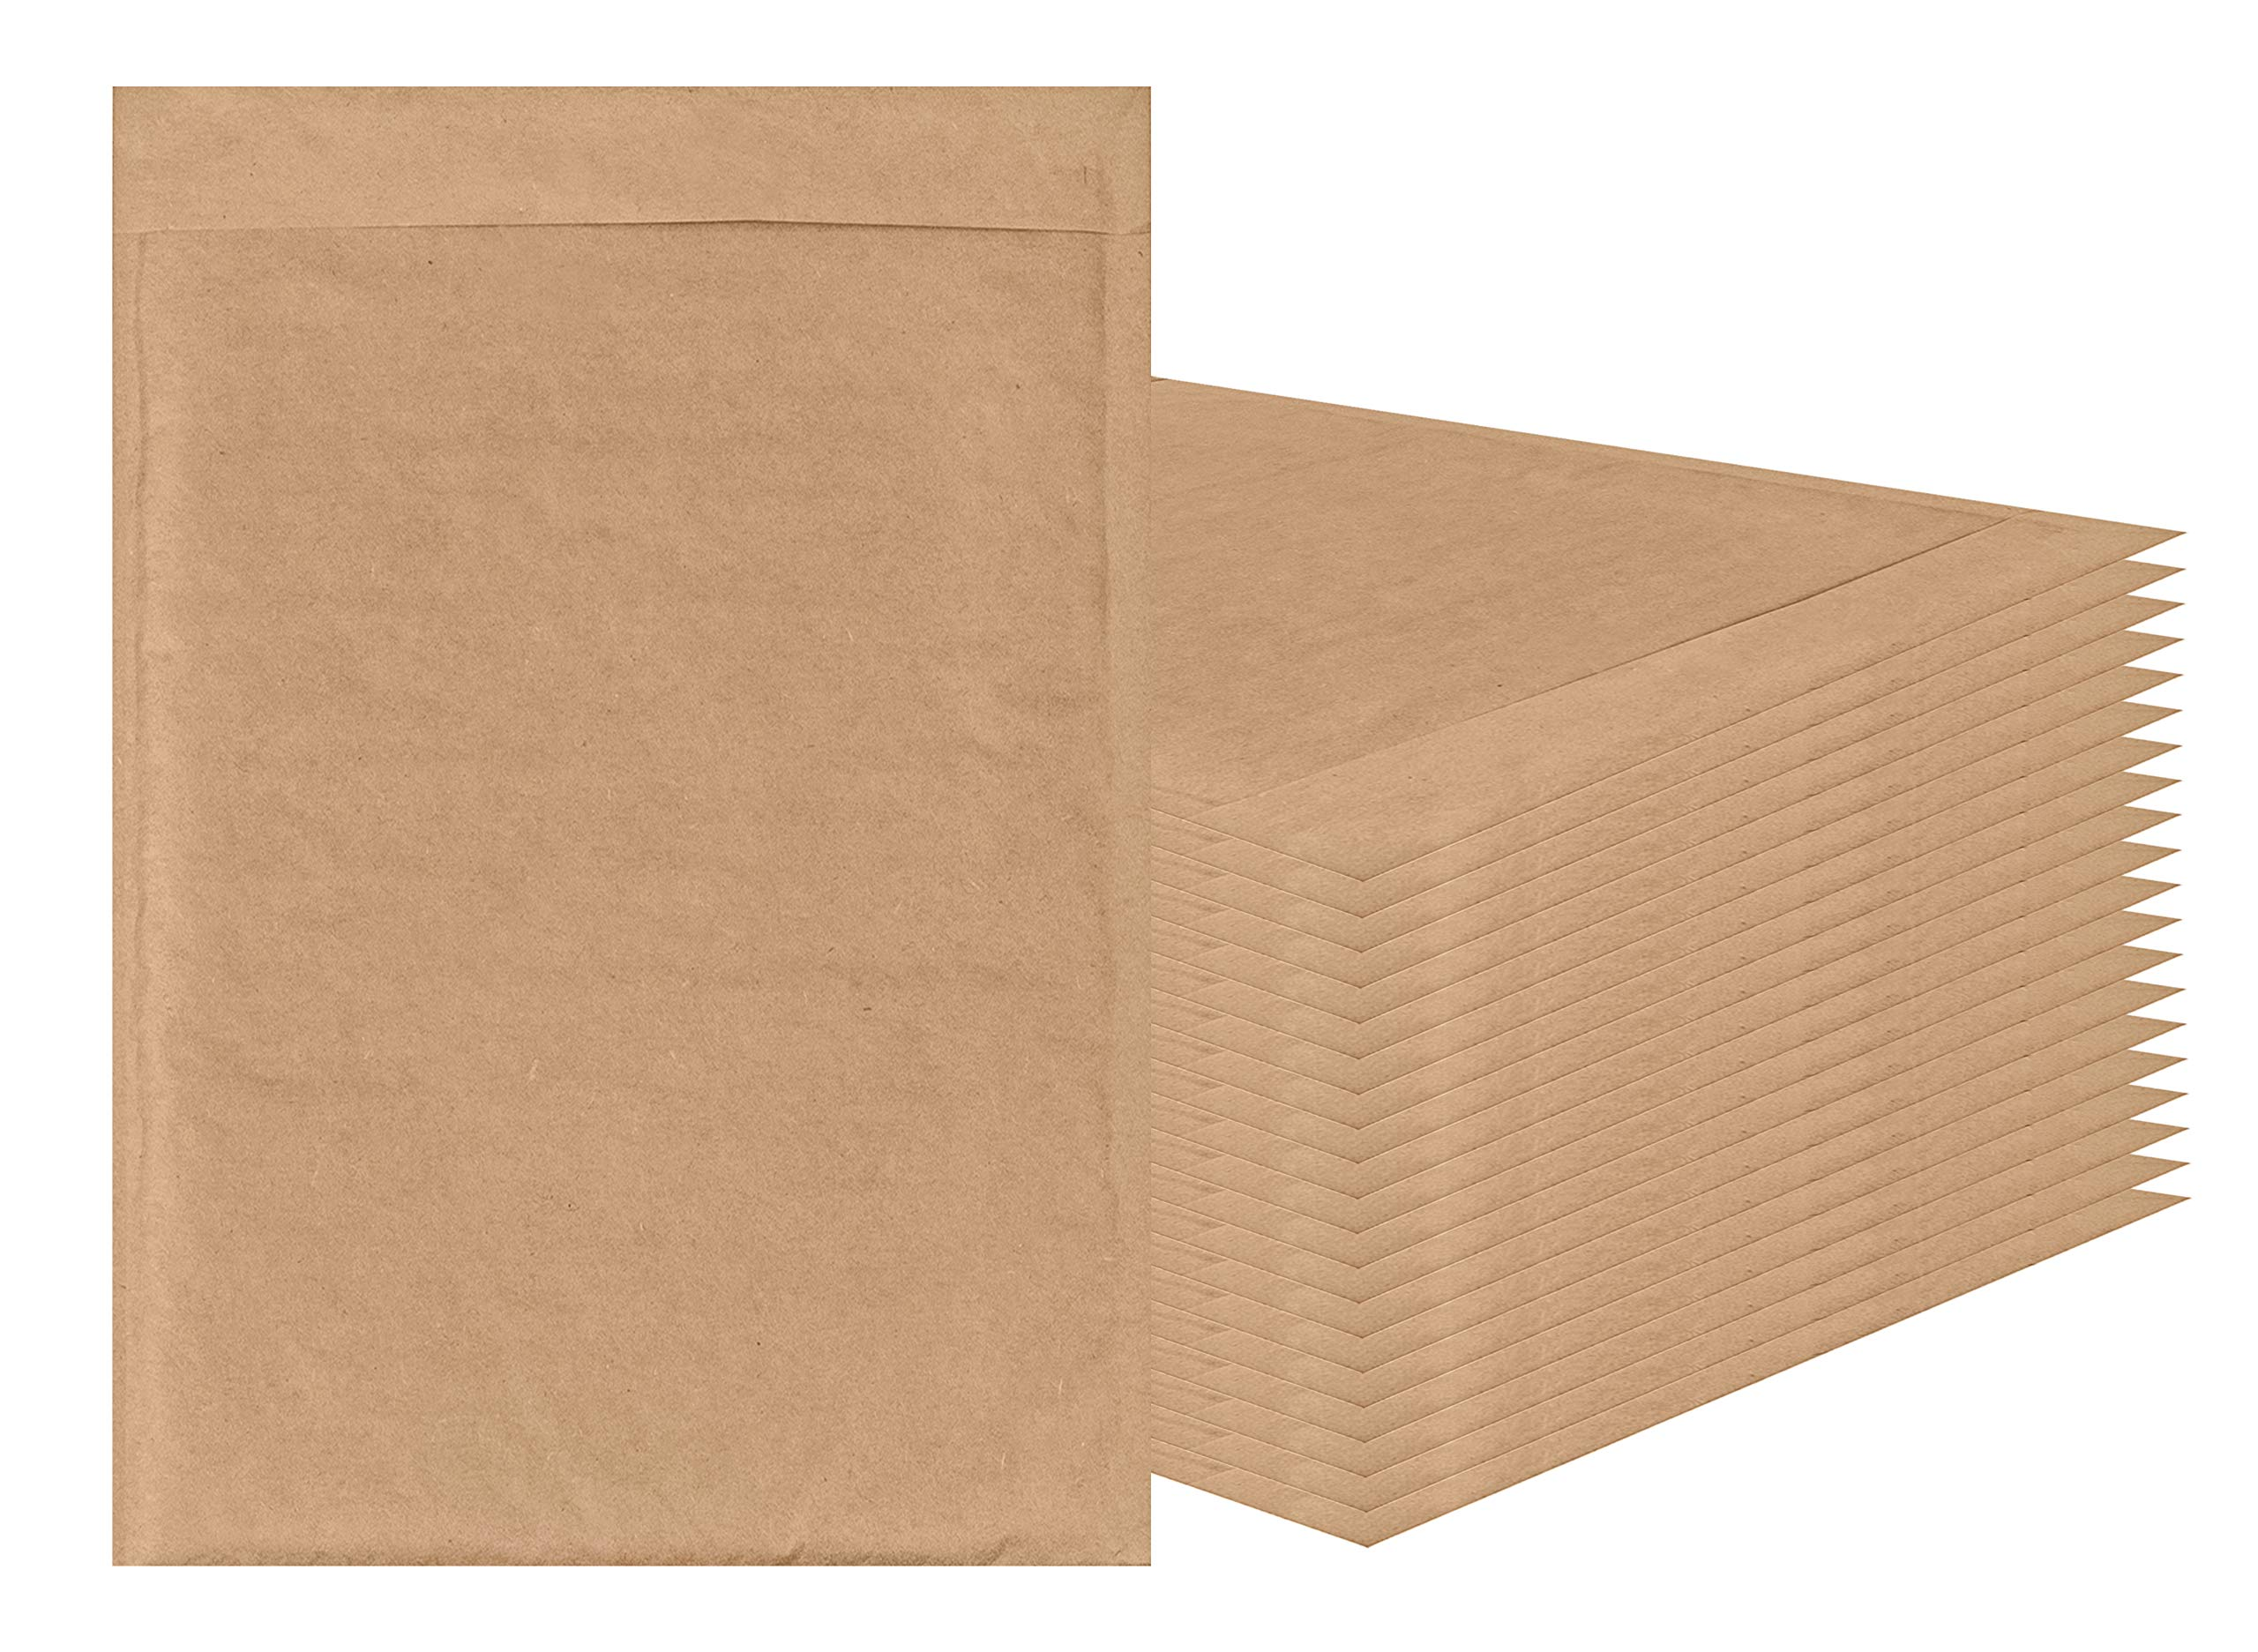 AMIFF Natural Kraft bubble mailers 14 x 20 Brown Padded envelopes 14 x 20 by Amiff. Pack of 10 Kraft Paper cushion envelopes. Exterior size 15 x 20 (15 x 20). Peel and Seal. Mailing, shipping. by Amiff (Image #1)